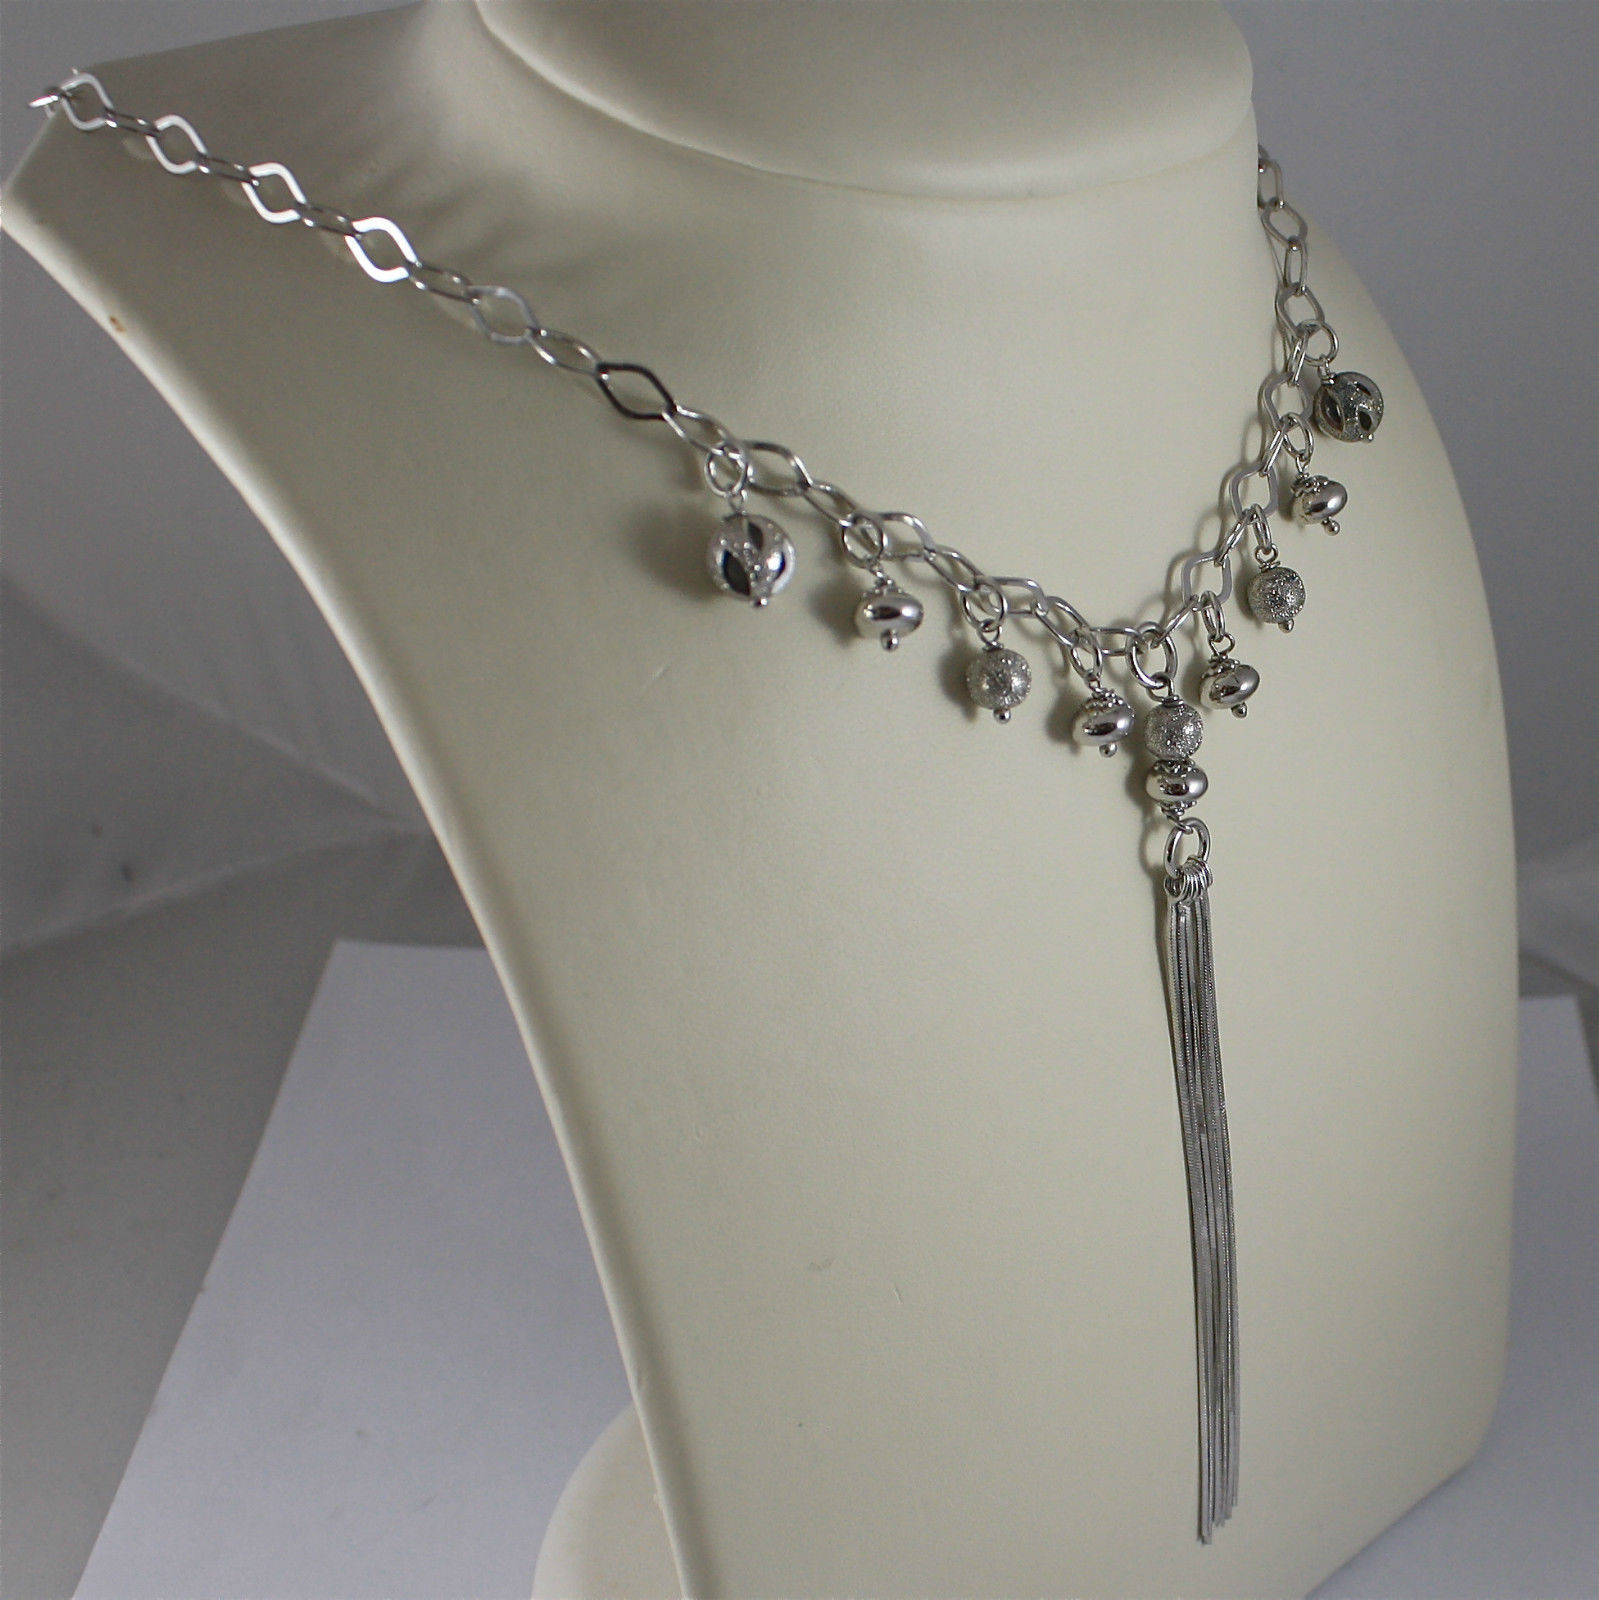 .925 RHODIUM SILVER NECKLACE, SCARF, LONG PENDANT, SILVER BALLS, BRIGHT WORKED.